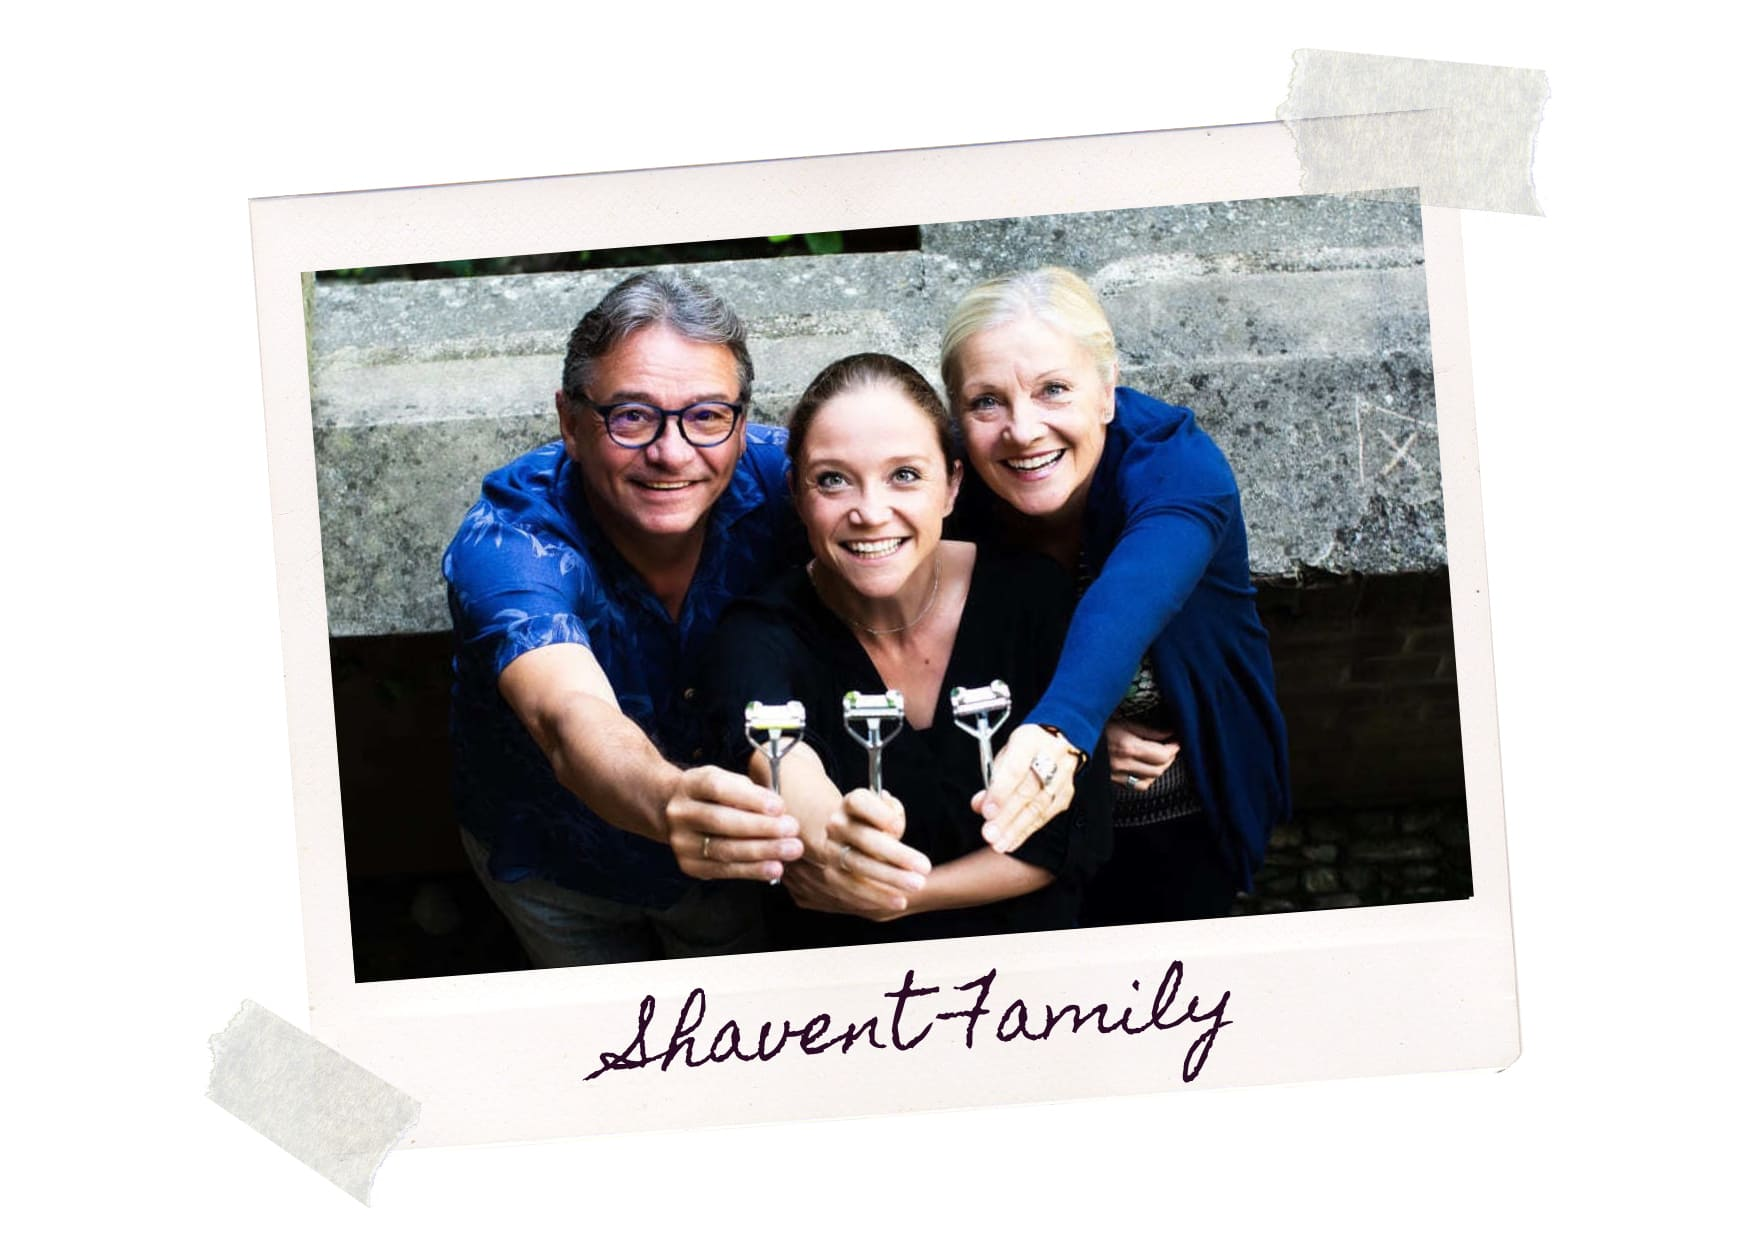 Shavent Founding Family